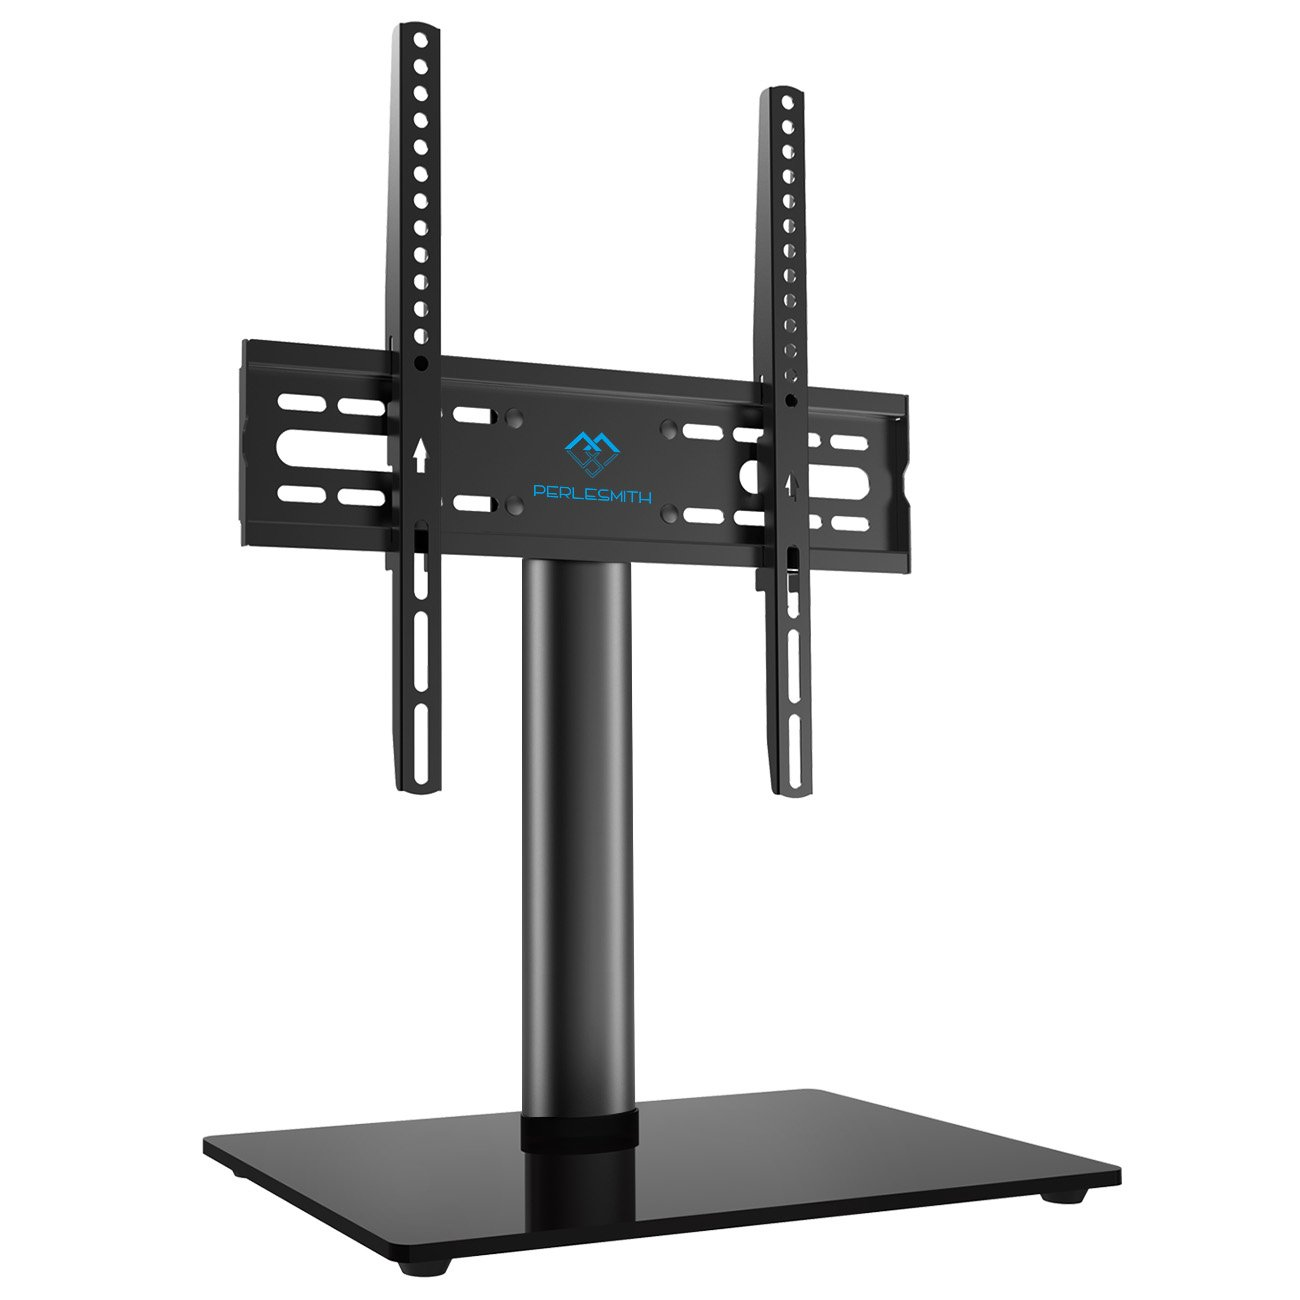 PERLESMITH Universal TV Stand - Table Top TV Stand for 23-49 inch LCD LED TVs - Height Adjustable TV Base Stand with Tempered Glass Base & Wire Management, VESA 400x400mm